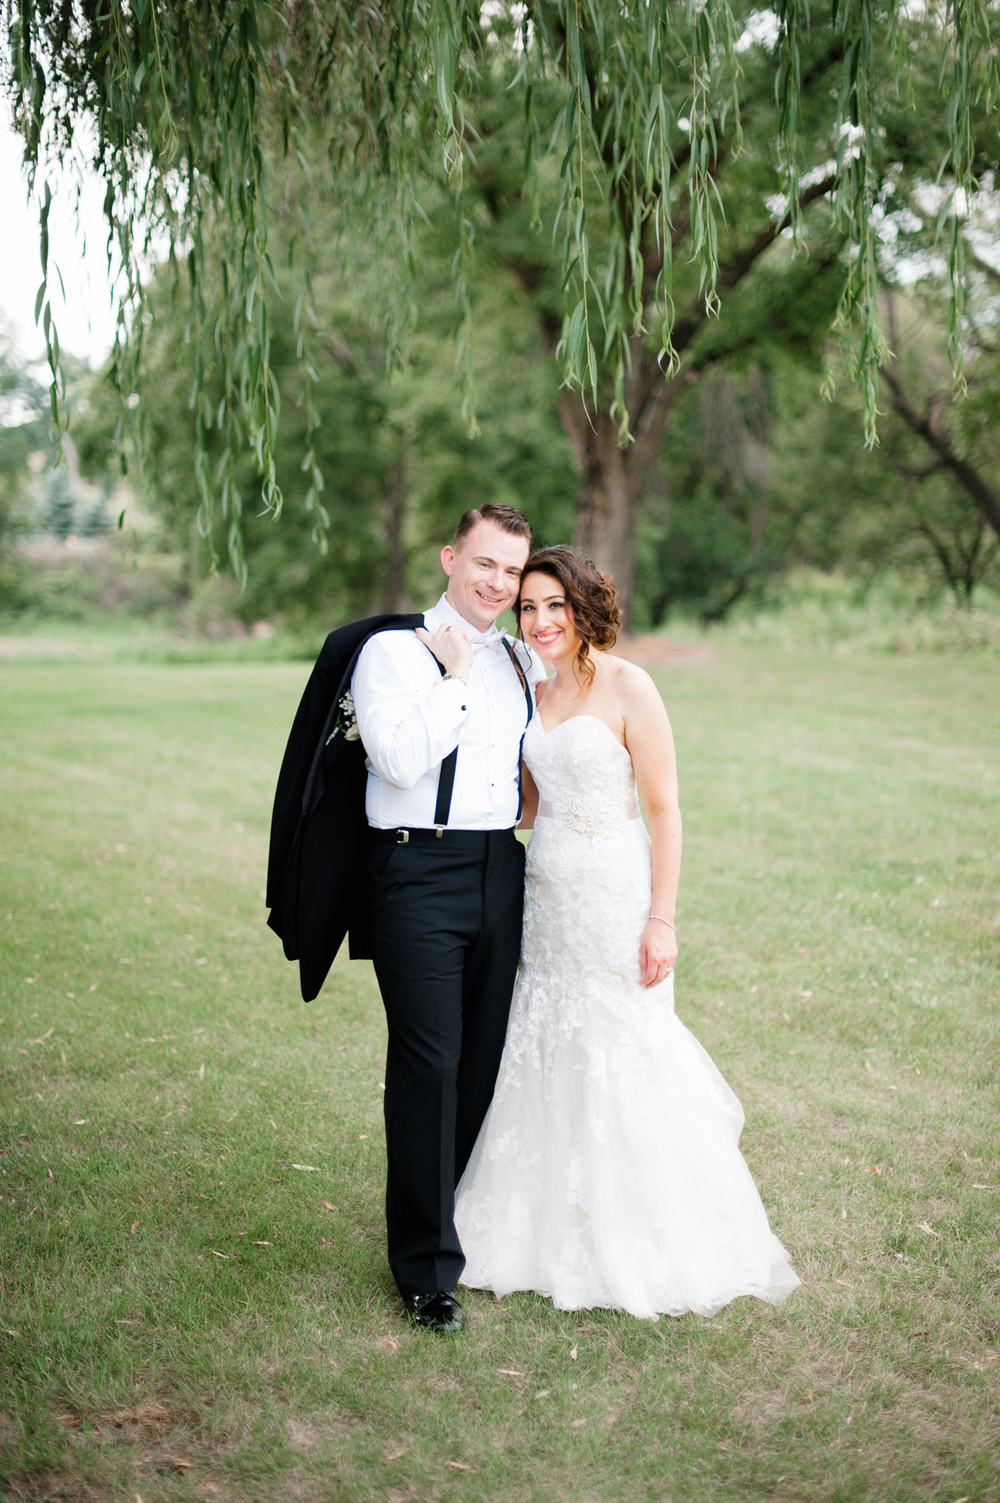 Megan and Noah - Jeff Sampson Weddings